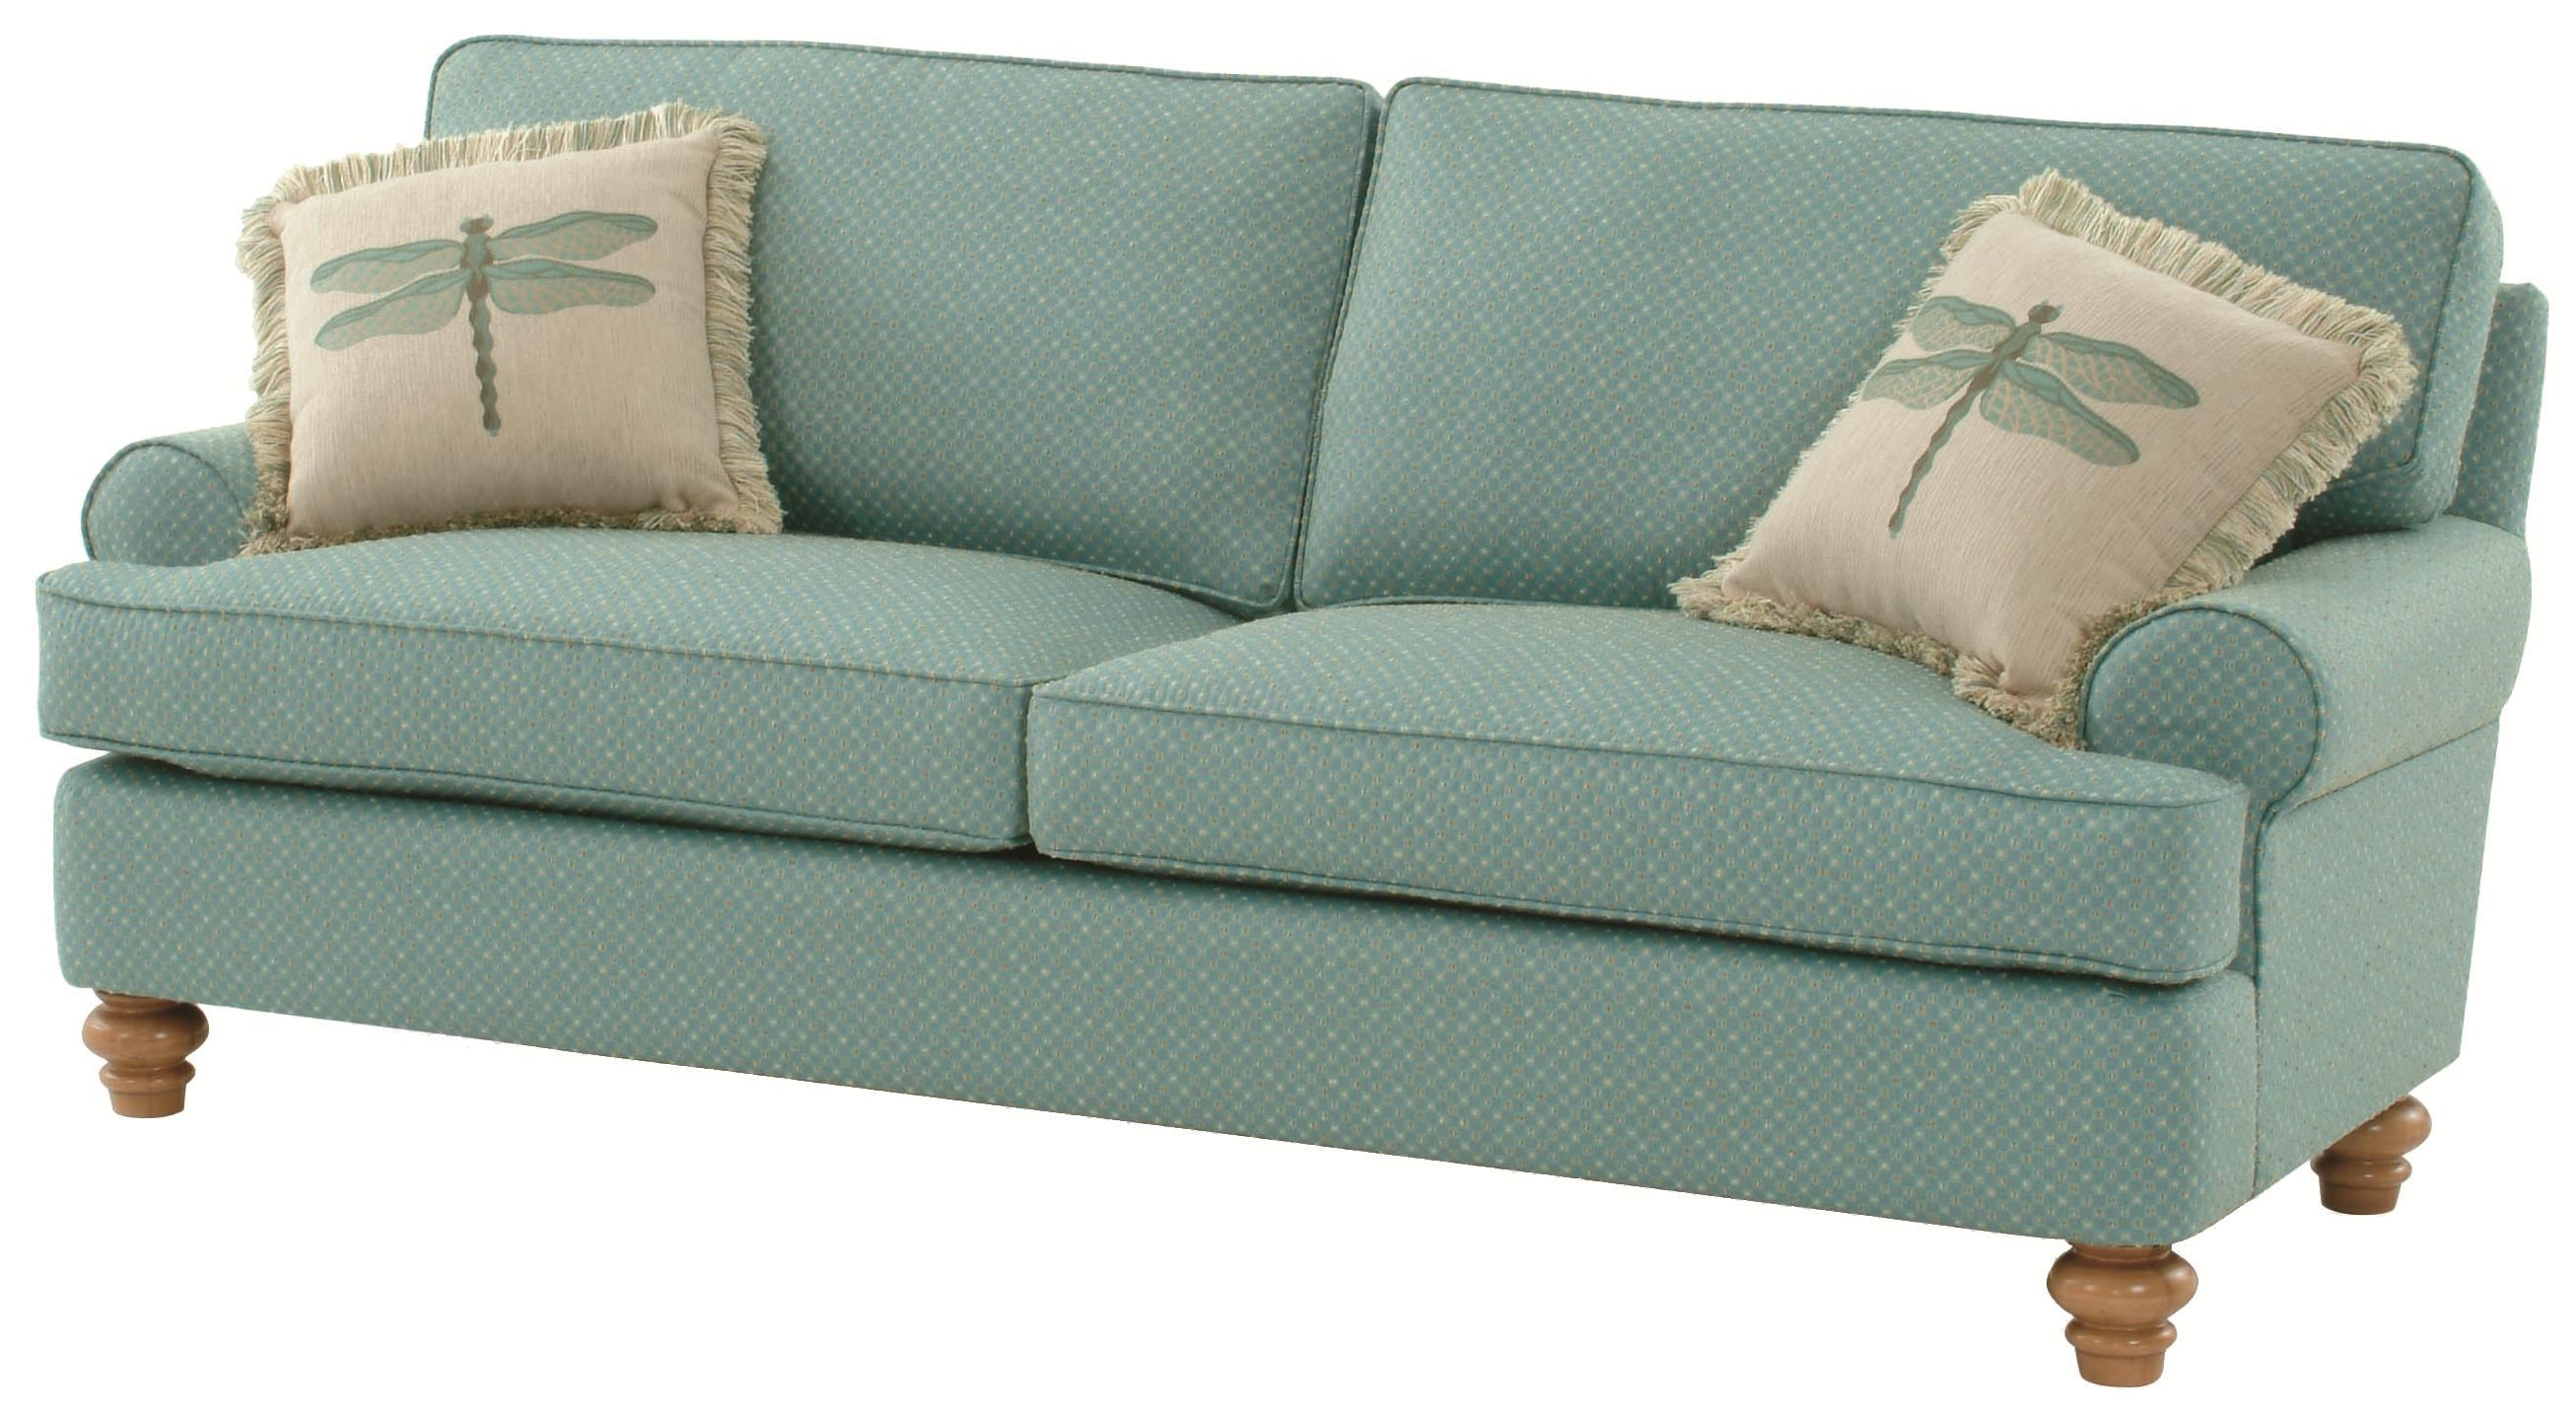 Braxton Culler Sofas & Accent Sofas Store – Dealer Locator With Regard To Braxton Sofas (Image 3 of 20)